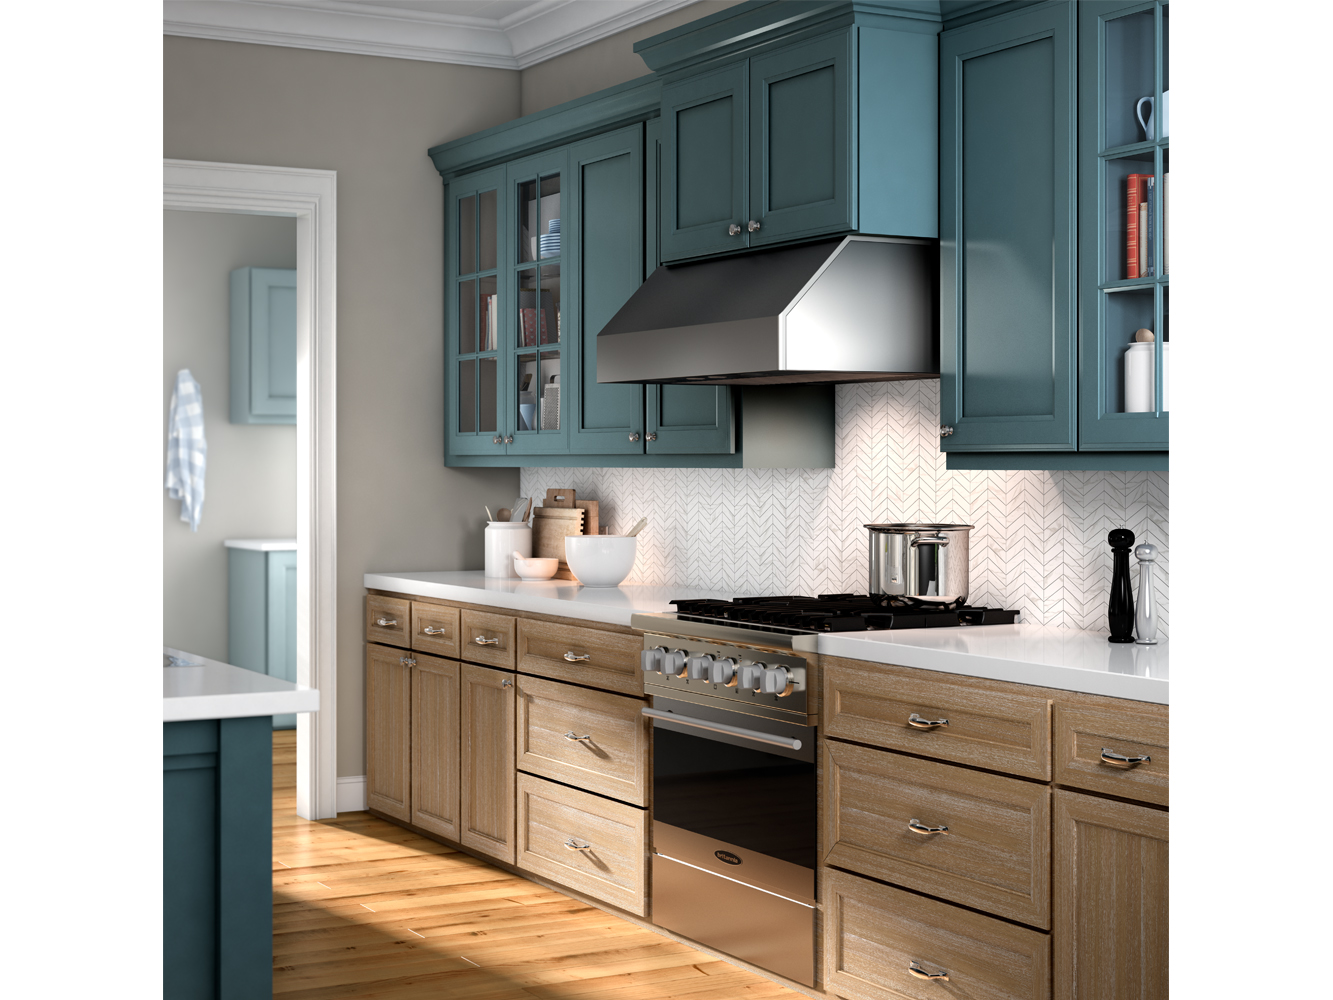 pix-us-cg-blue-kitchen